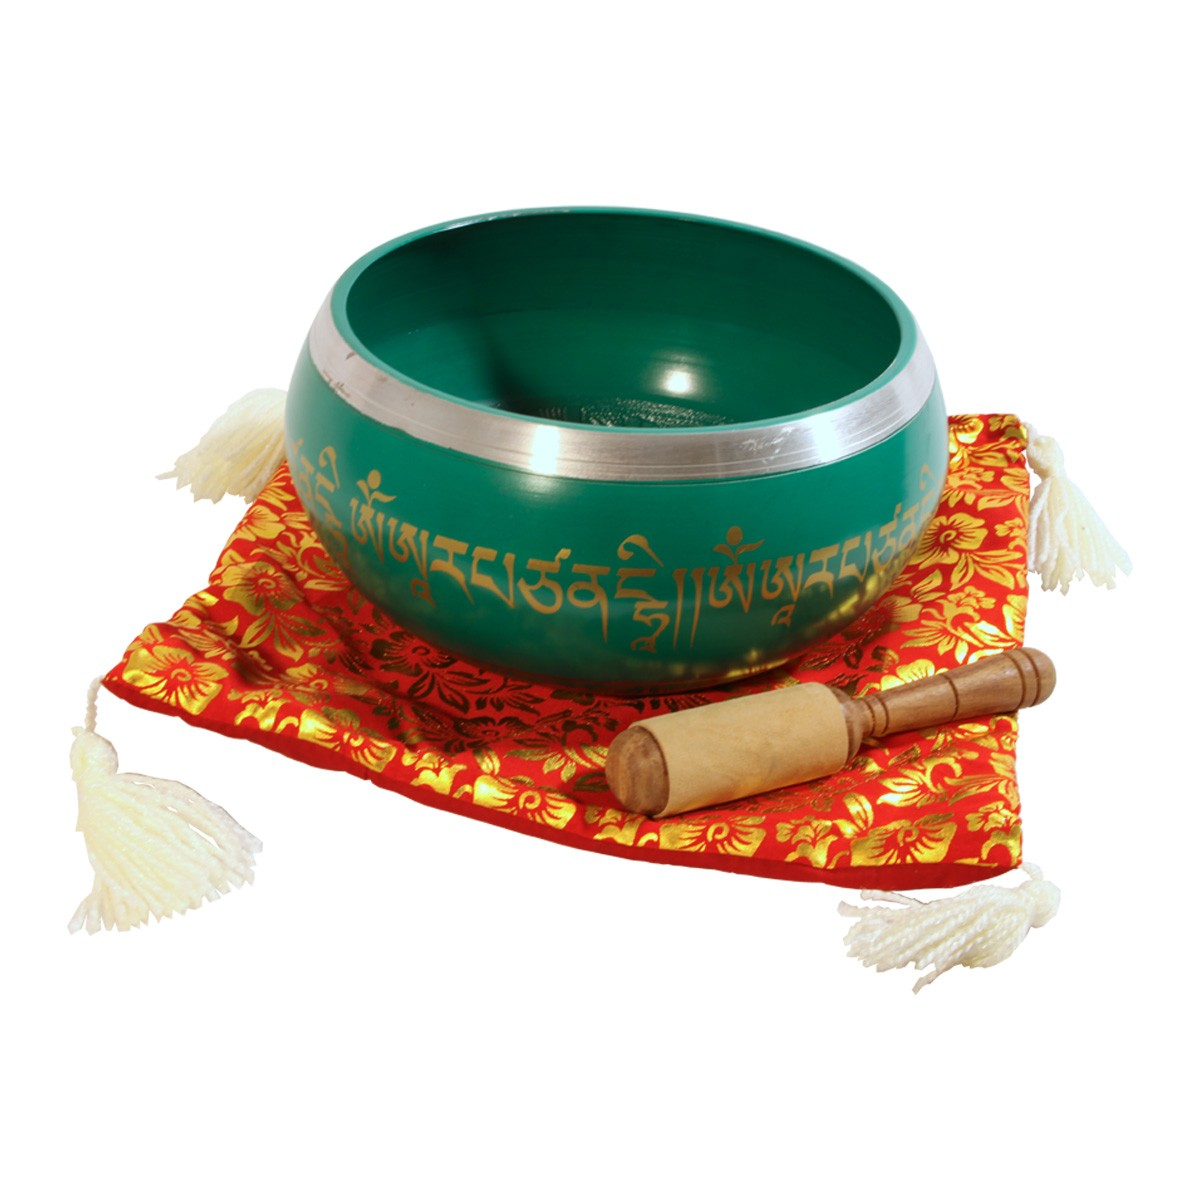 DOBANI Aluminum Singing Bowl 8 -Inch, Green